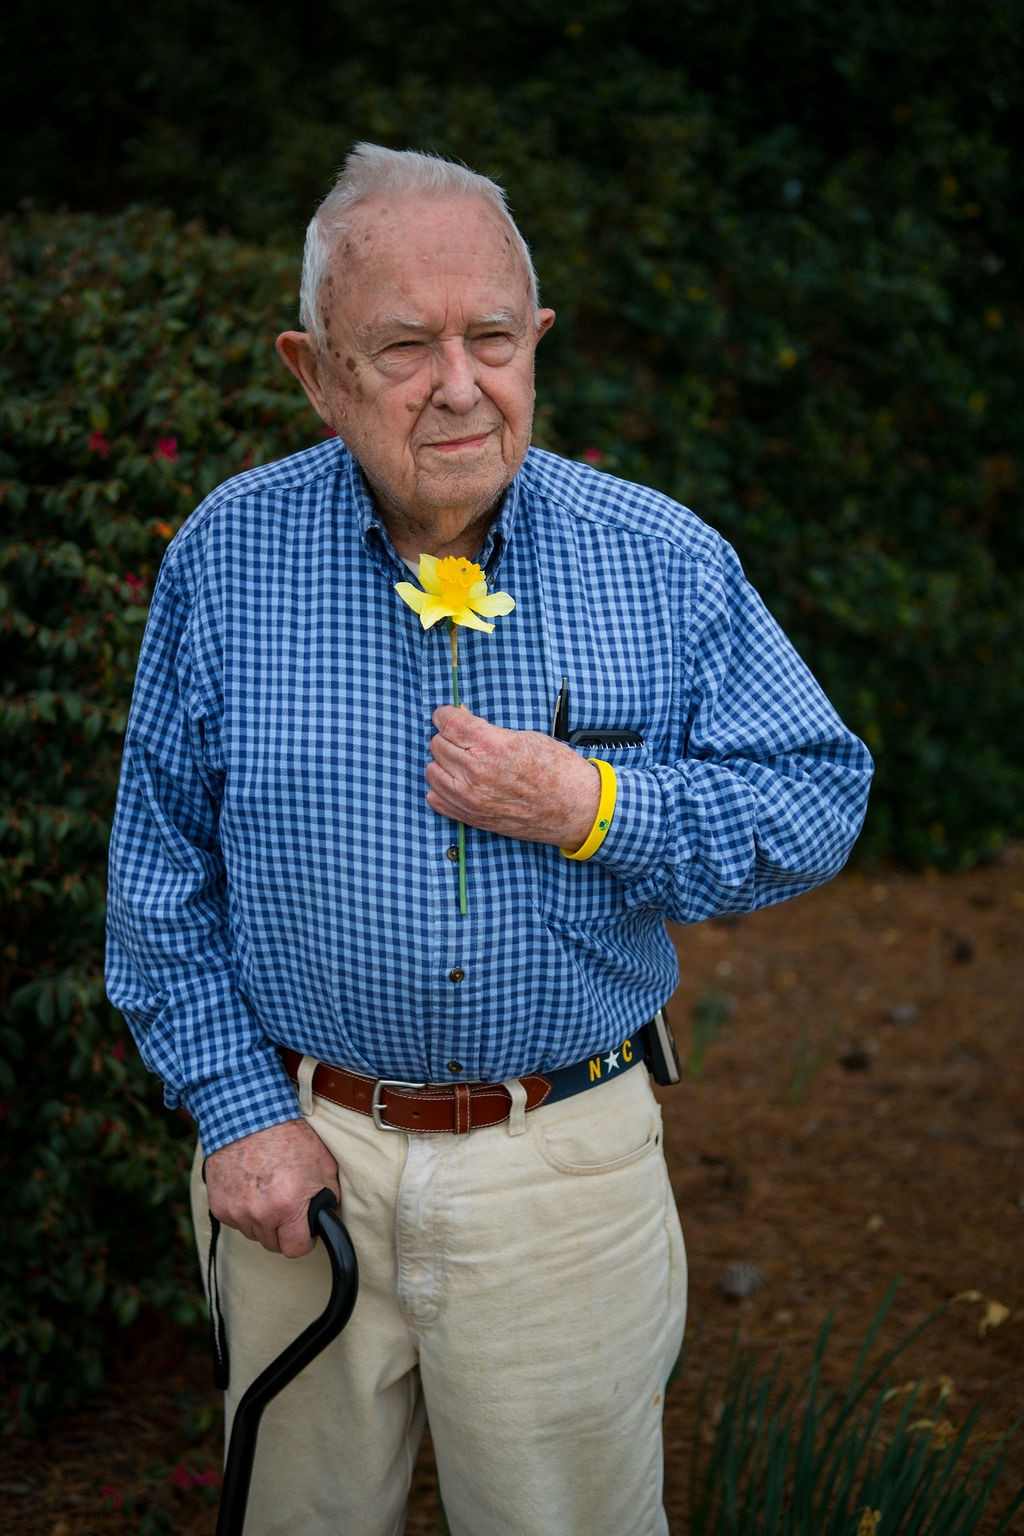 Old man with daffodil blossom